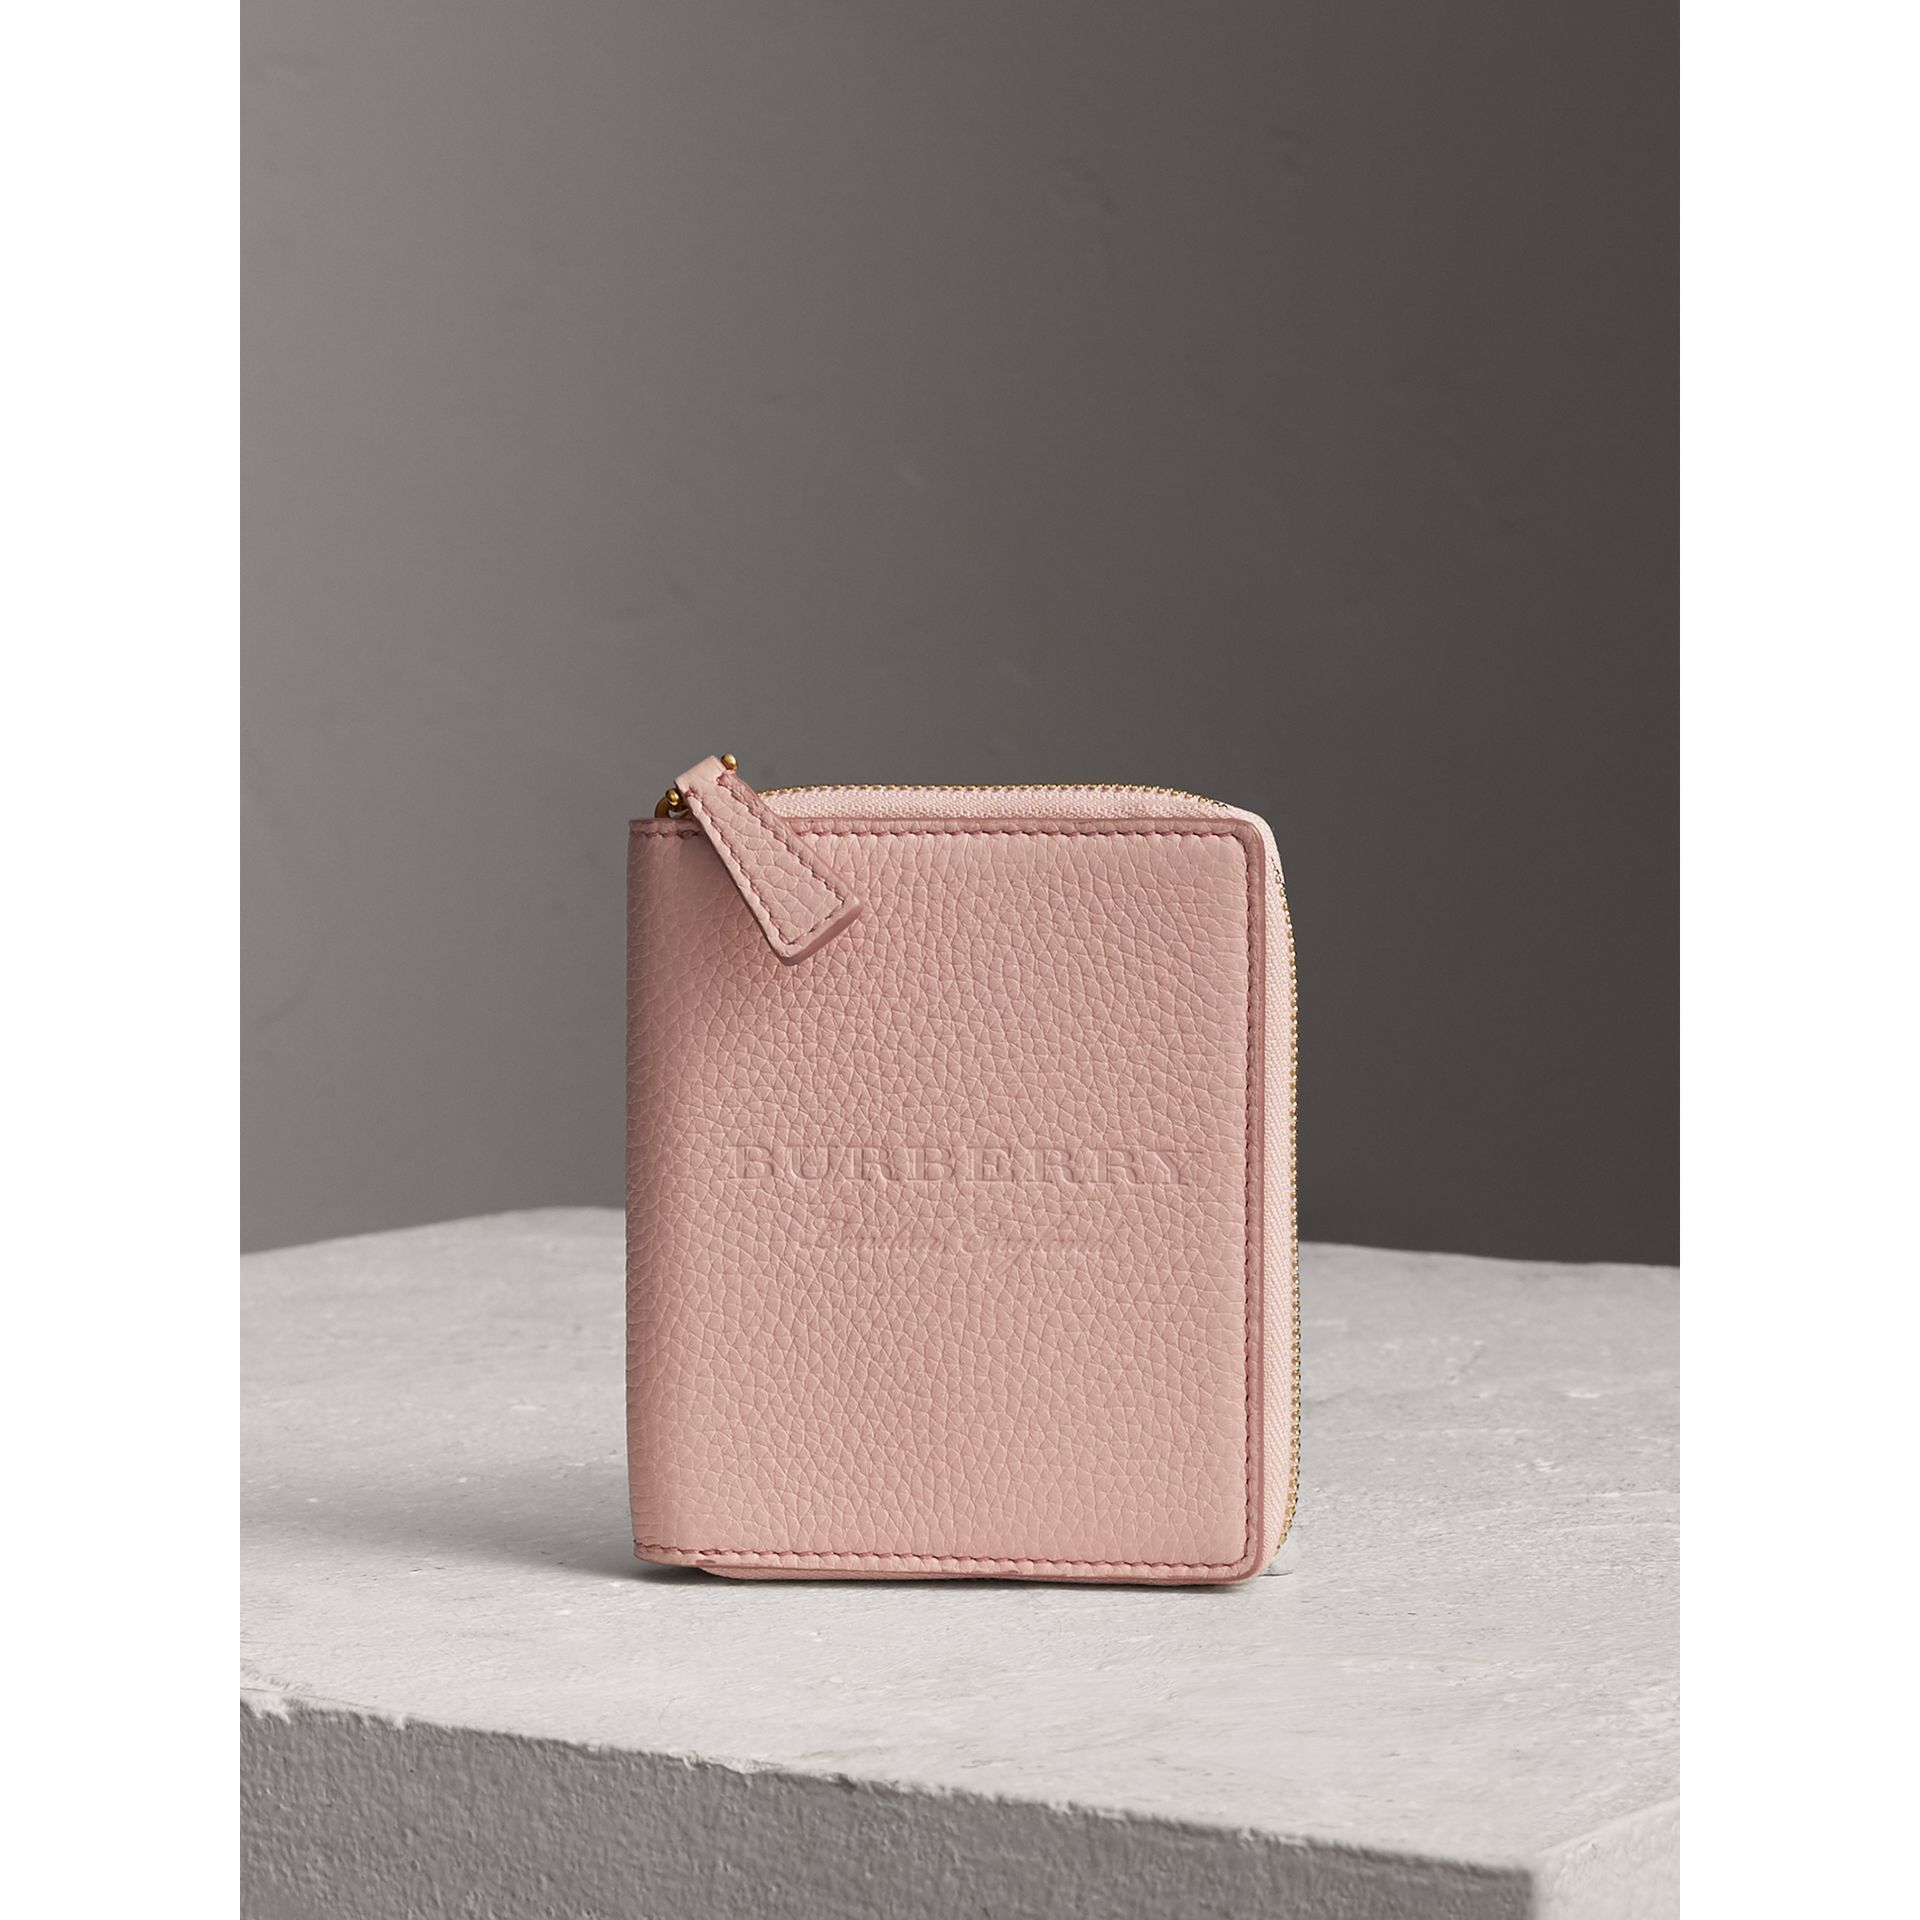 Embossed Grainy Leather Ziparound A6 Notebook Case in Pale Ash Rose | Burberry United Kingdom - gallery image 4